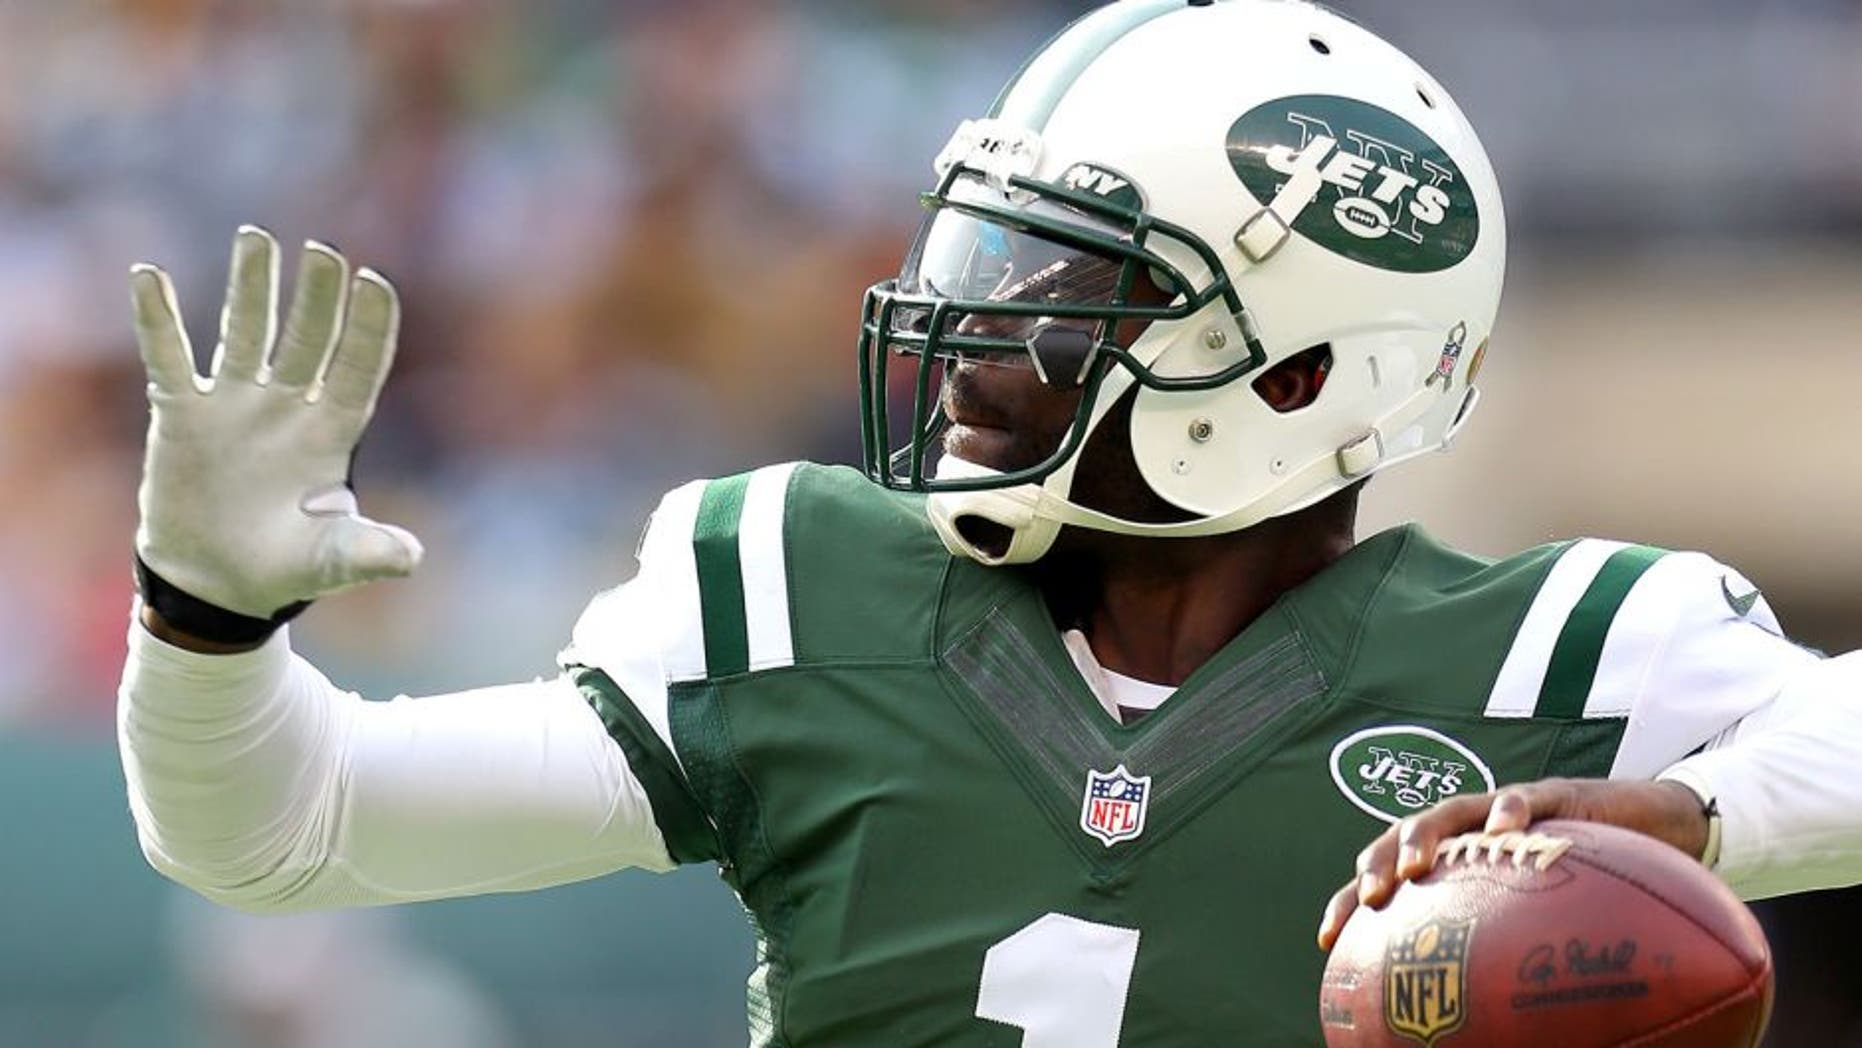 Nov 9, 2014; East Rutherford, NJ, USA; New York Jets quarterback Michael Vick (1) passes against the Pittsburgh Steelers during the first quarter at MetLife Stadium. Mandatory Credit: Adam Hunger-USA TODAY Sports